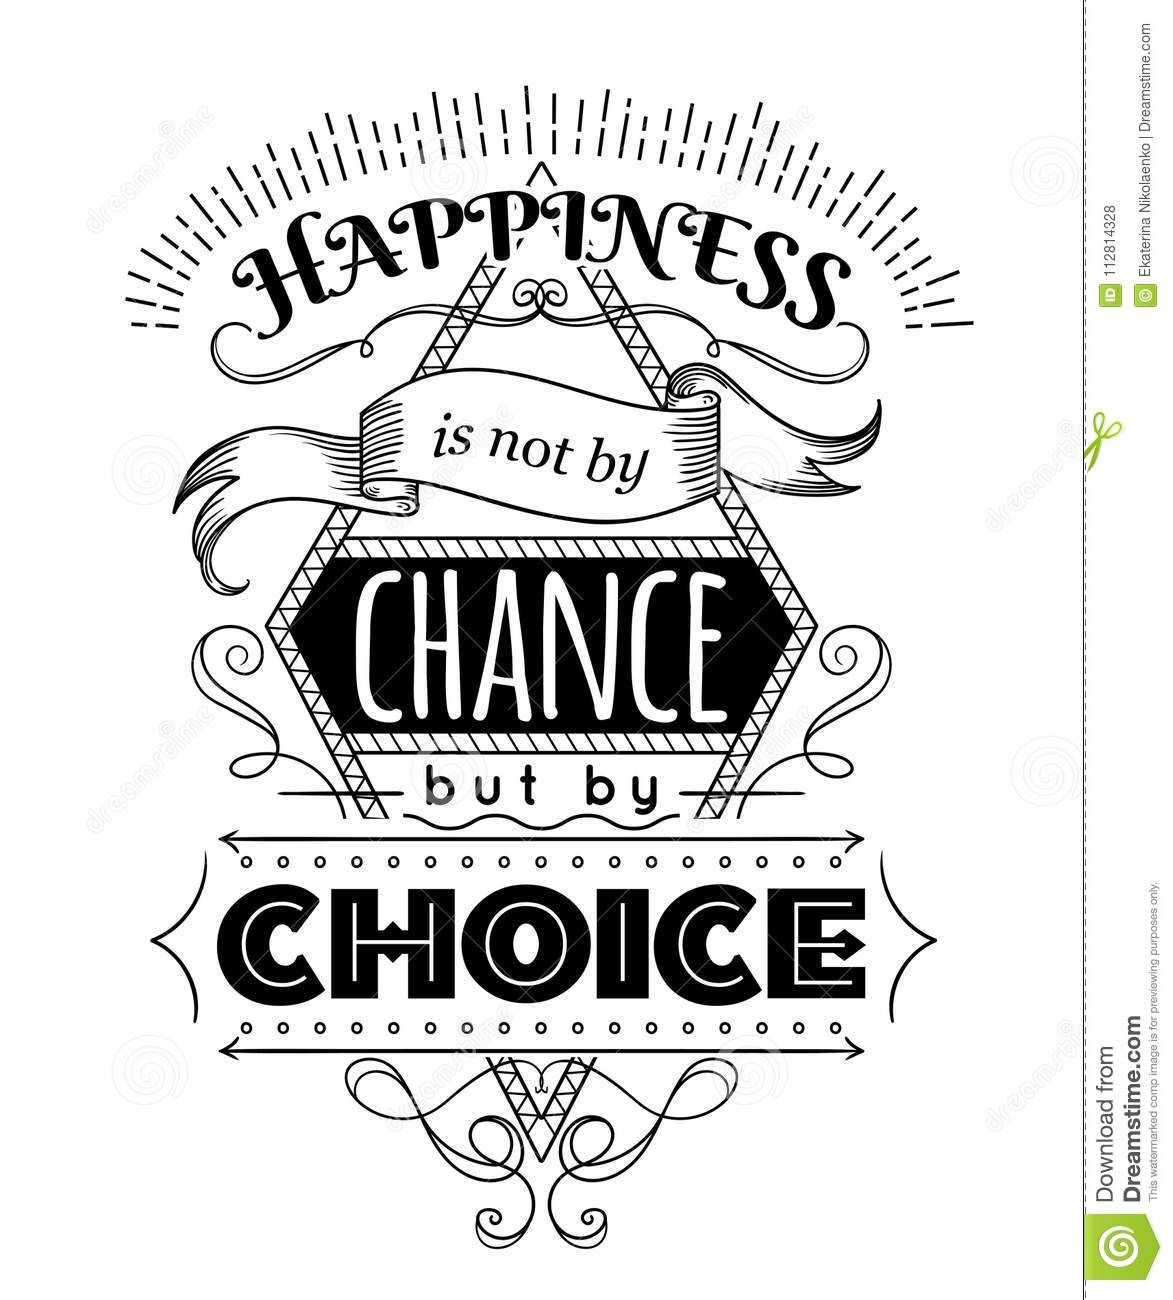 Typography poster with hand drawn elements. Inspirational quote. Happiness is not by chance but by choice.